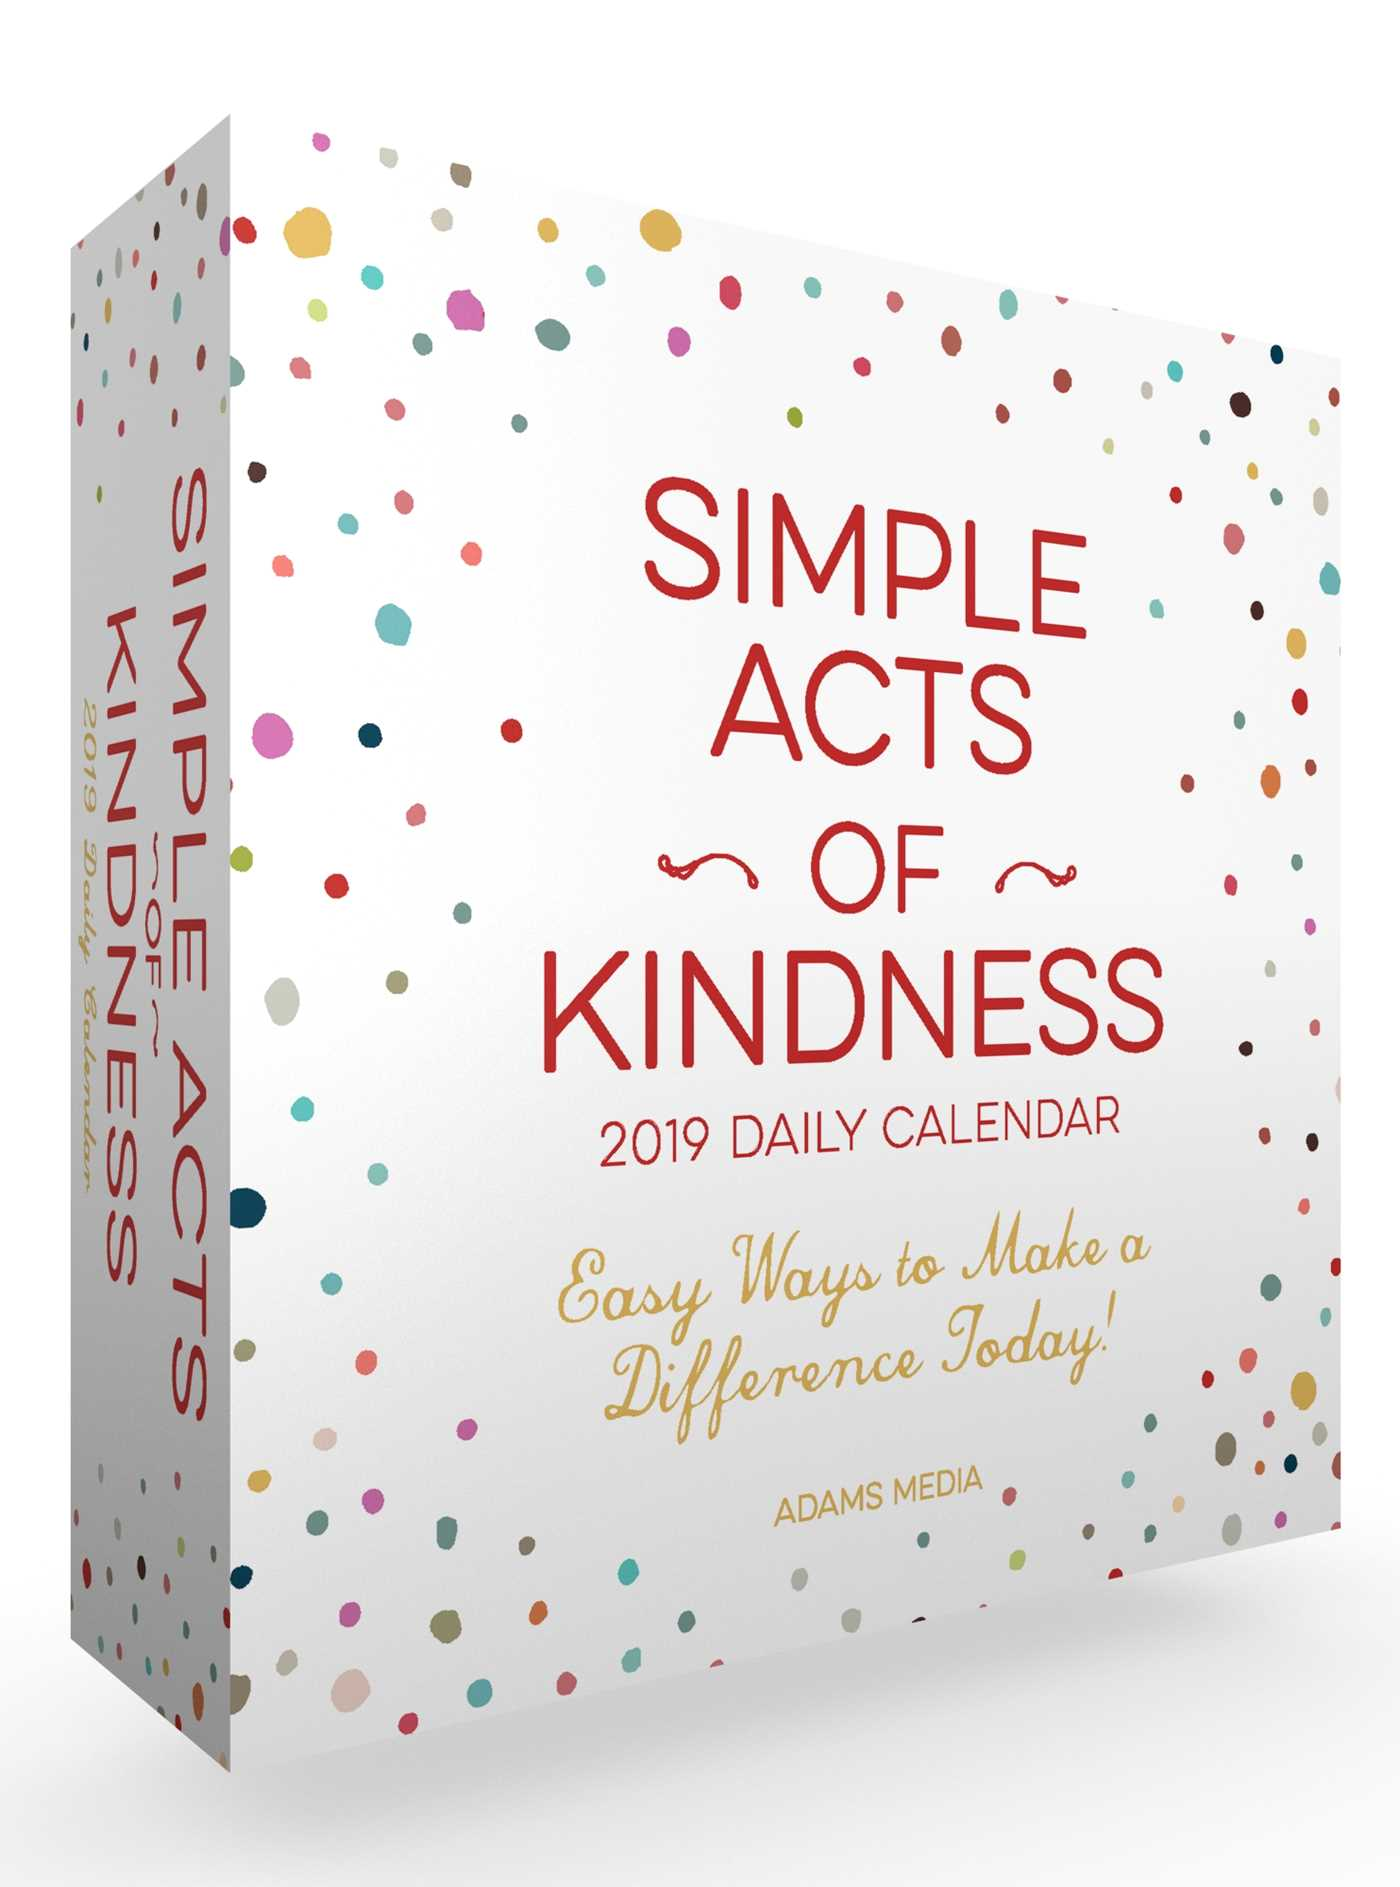 Simple acts of kindness 2019 daily calendar 9781507207772 hr